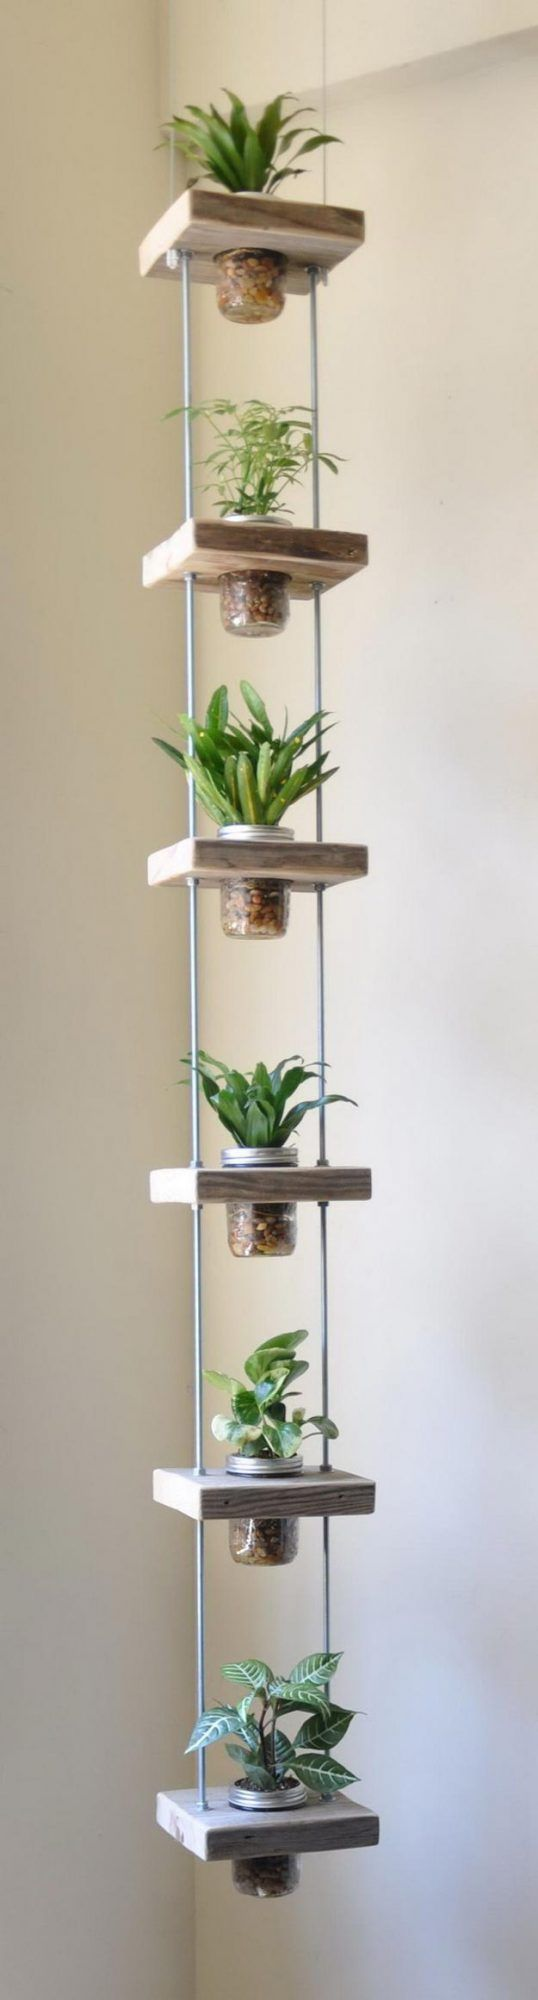 Mason Jar Vertical Herb Garden | Fun and Easy Indoor Herb Garden Ideas